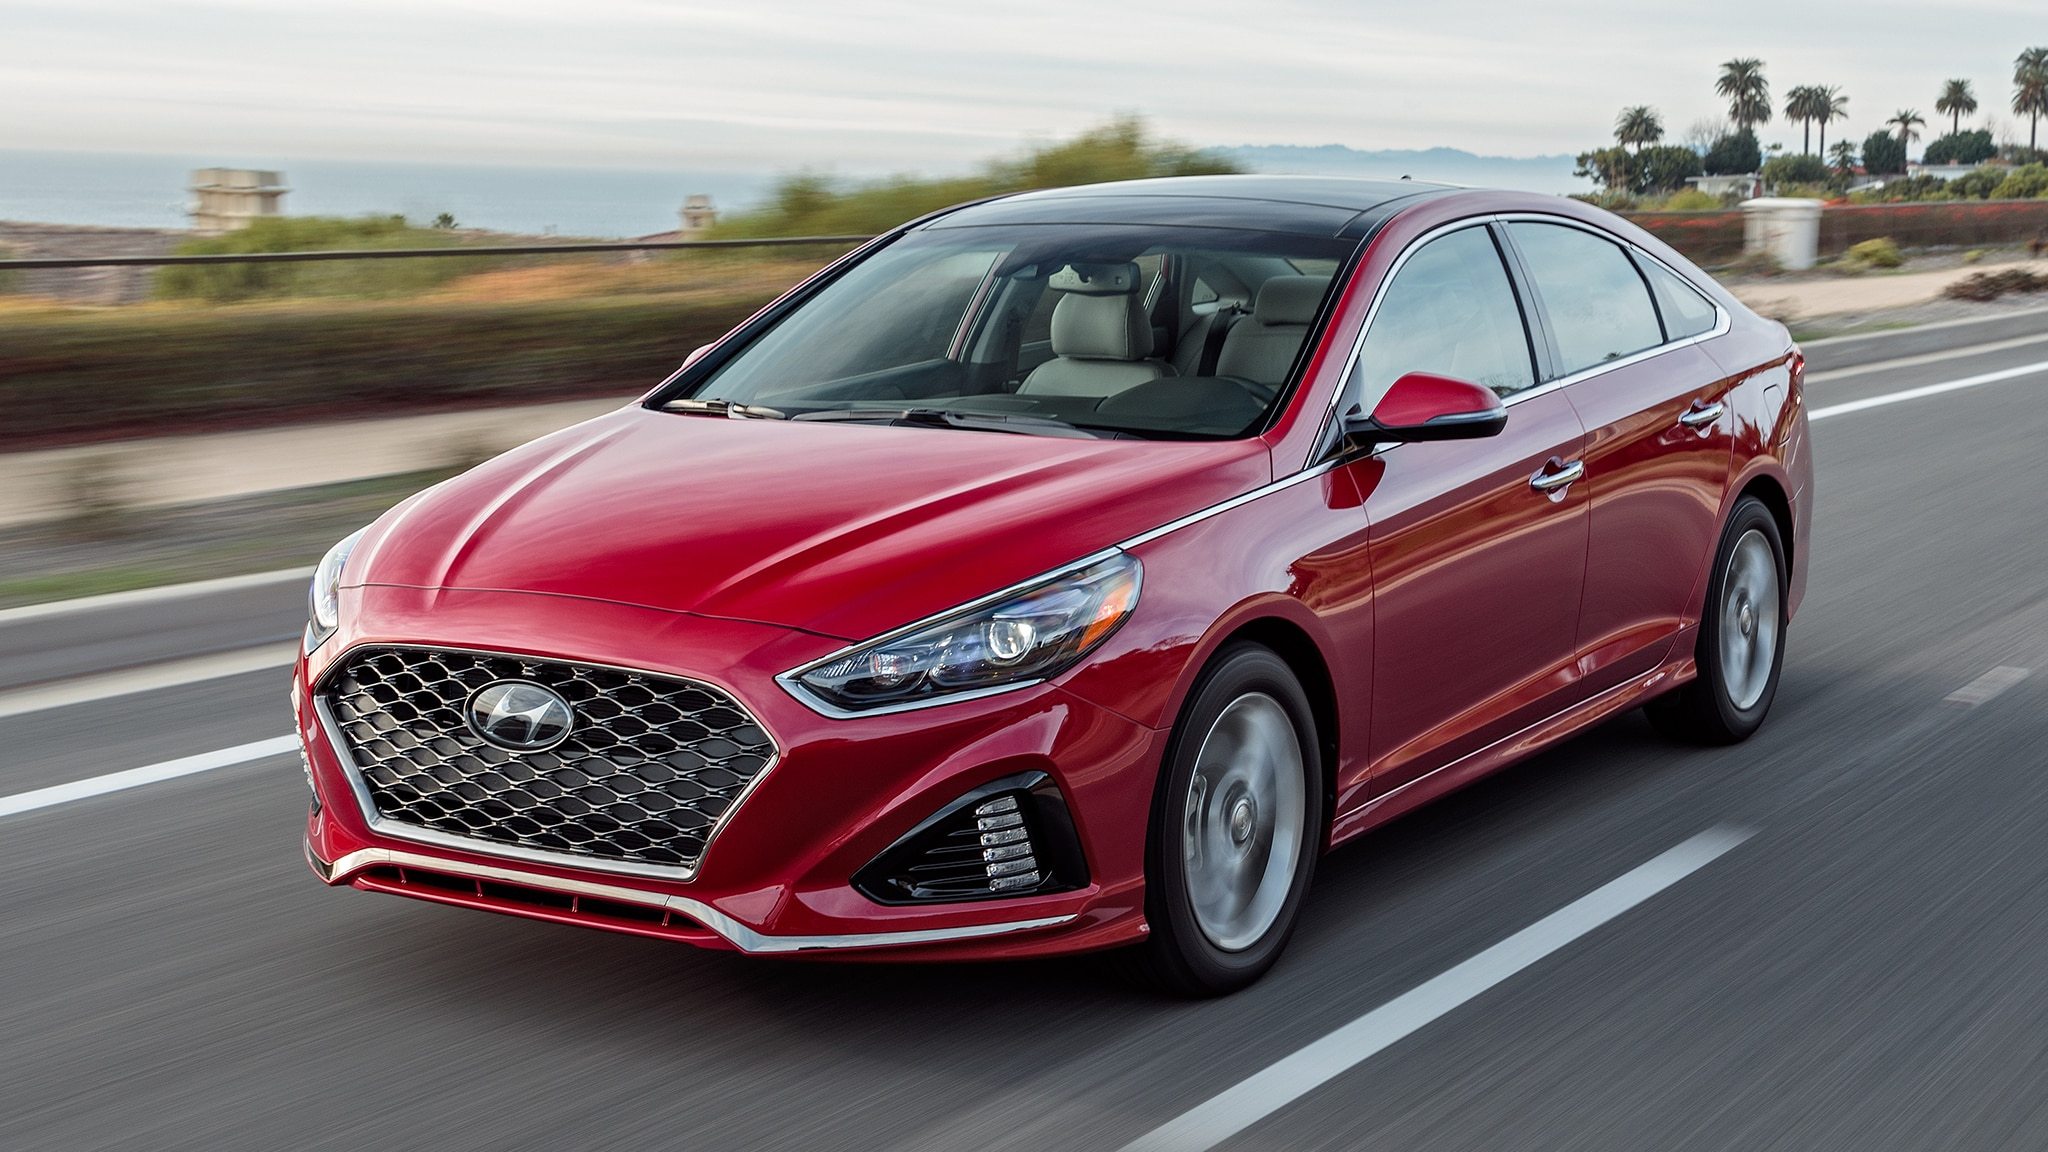 2018 Hyundai Sonata Limited Front Three Quarter In Motion 1